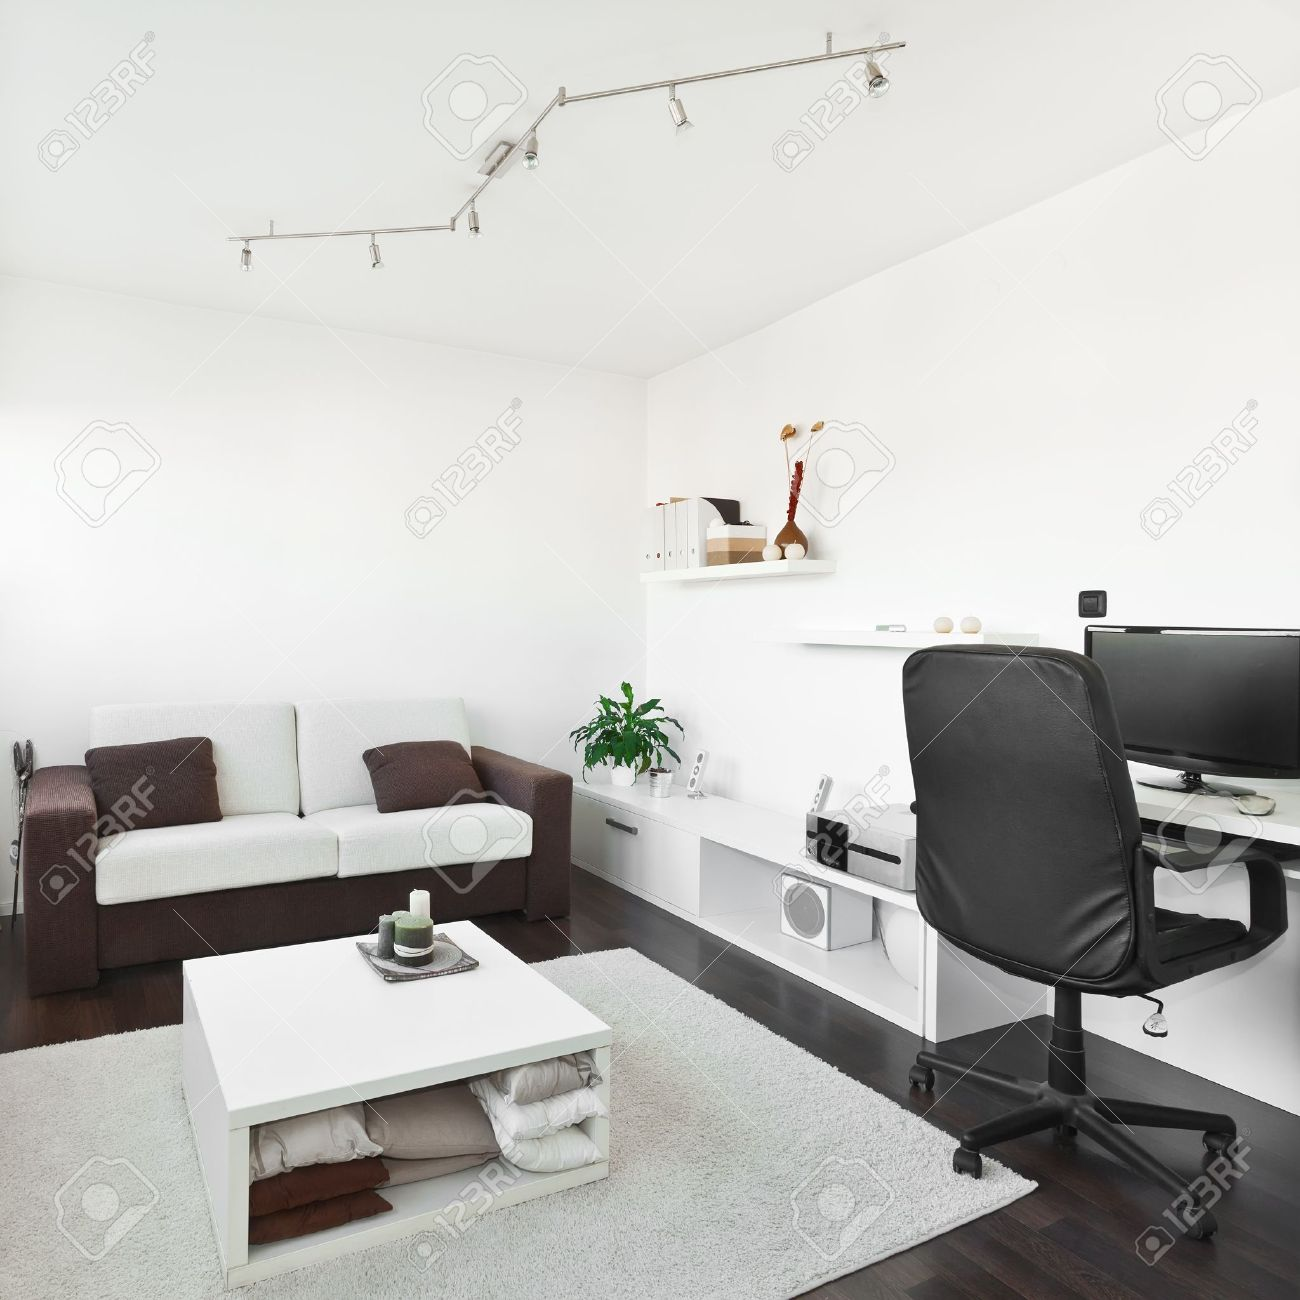 Modern Living Room With Computer Desk And The Screen Sofa And Stock Photo Picture And Royalty Free Image Image 19981592